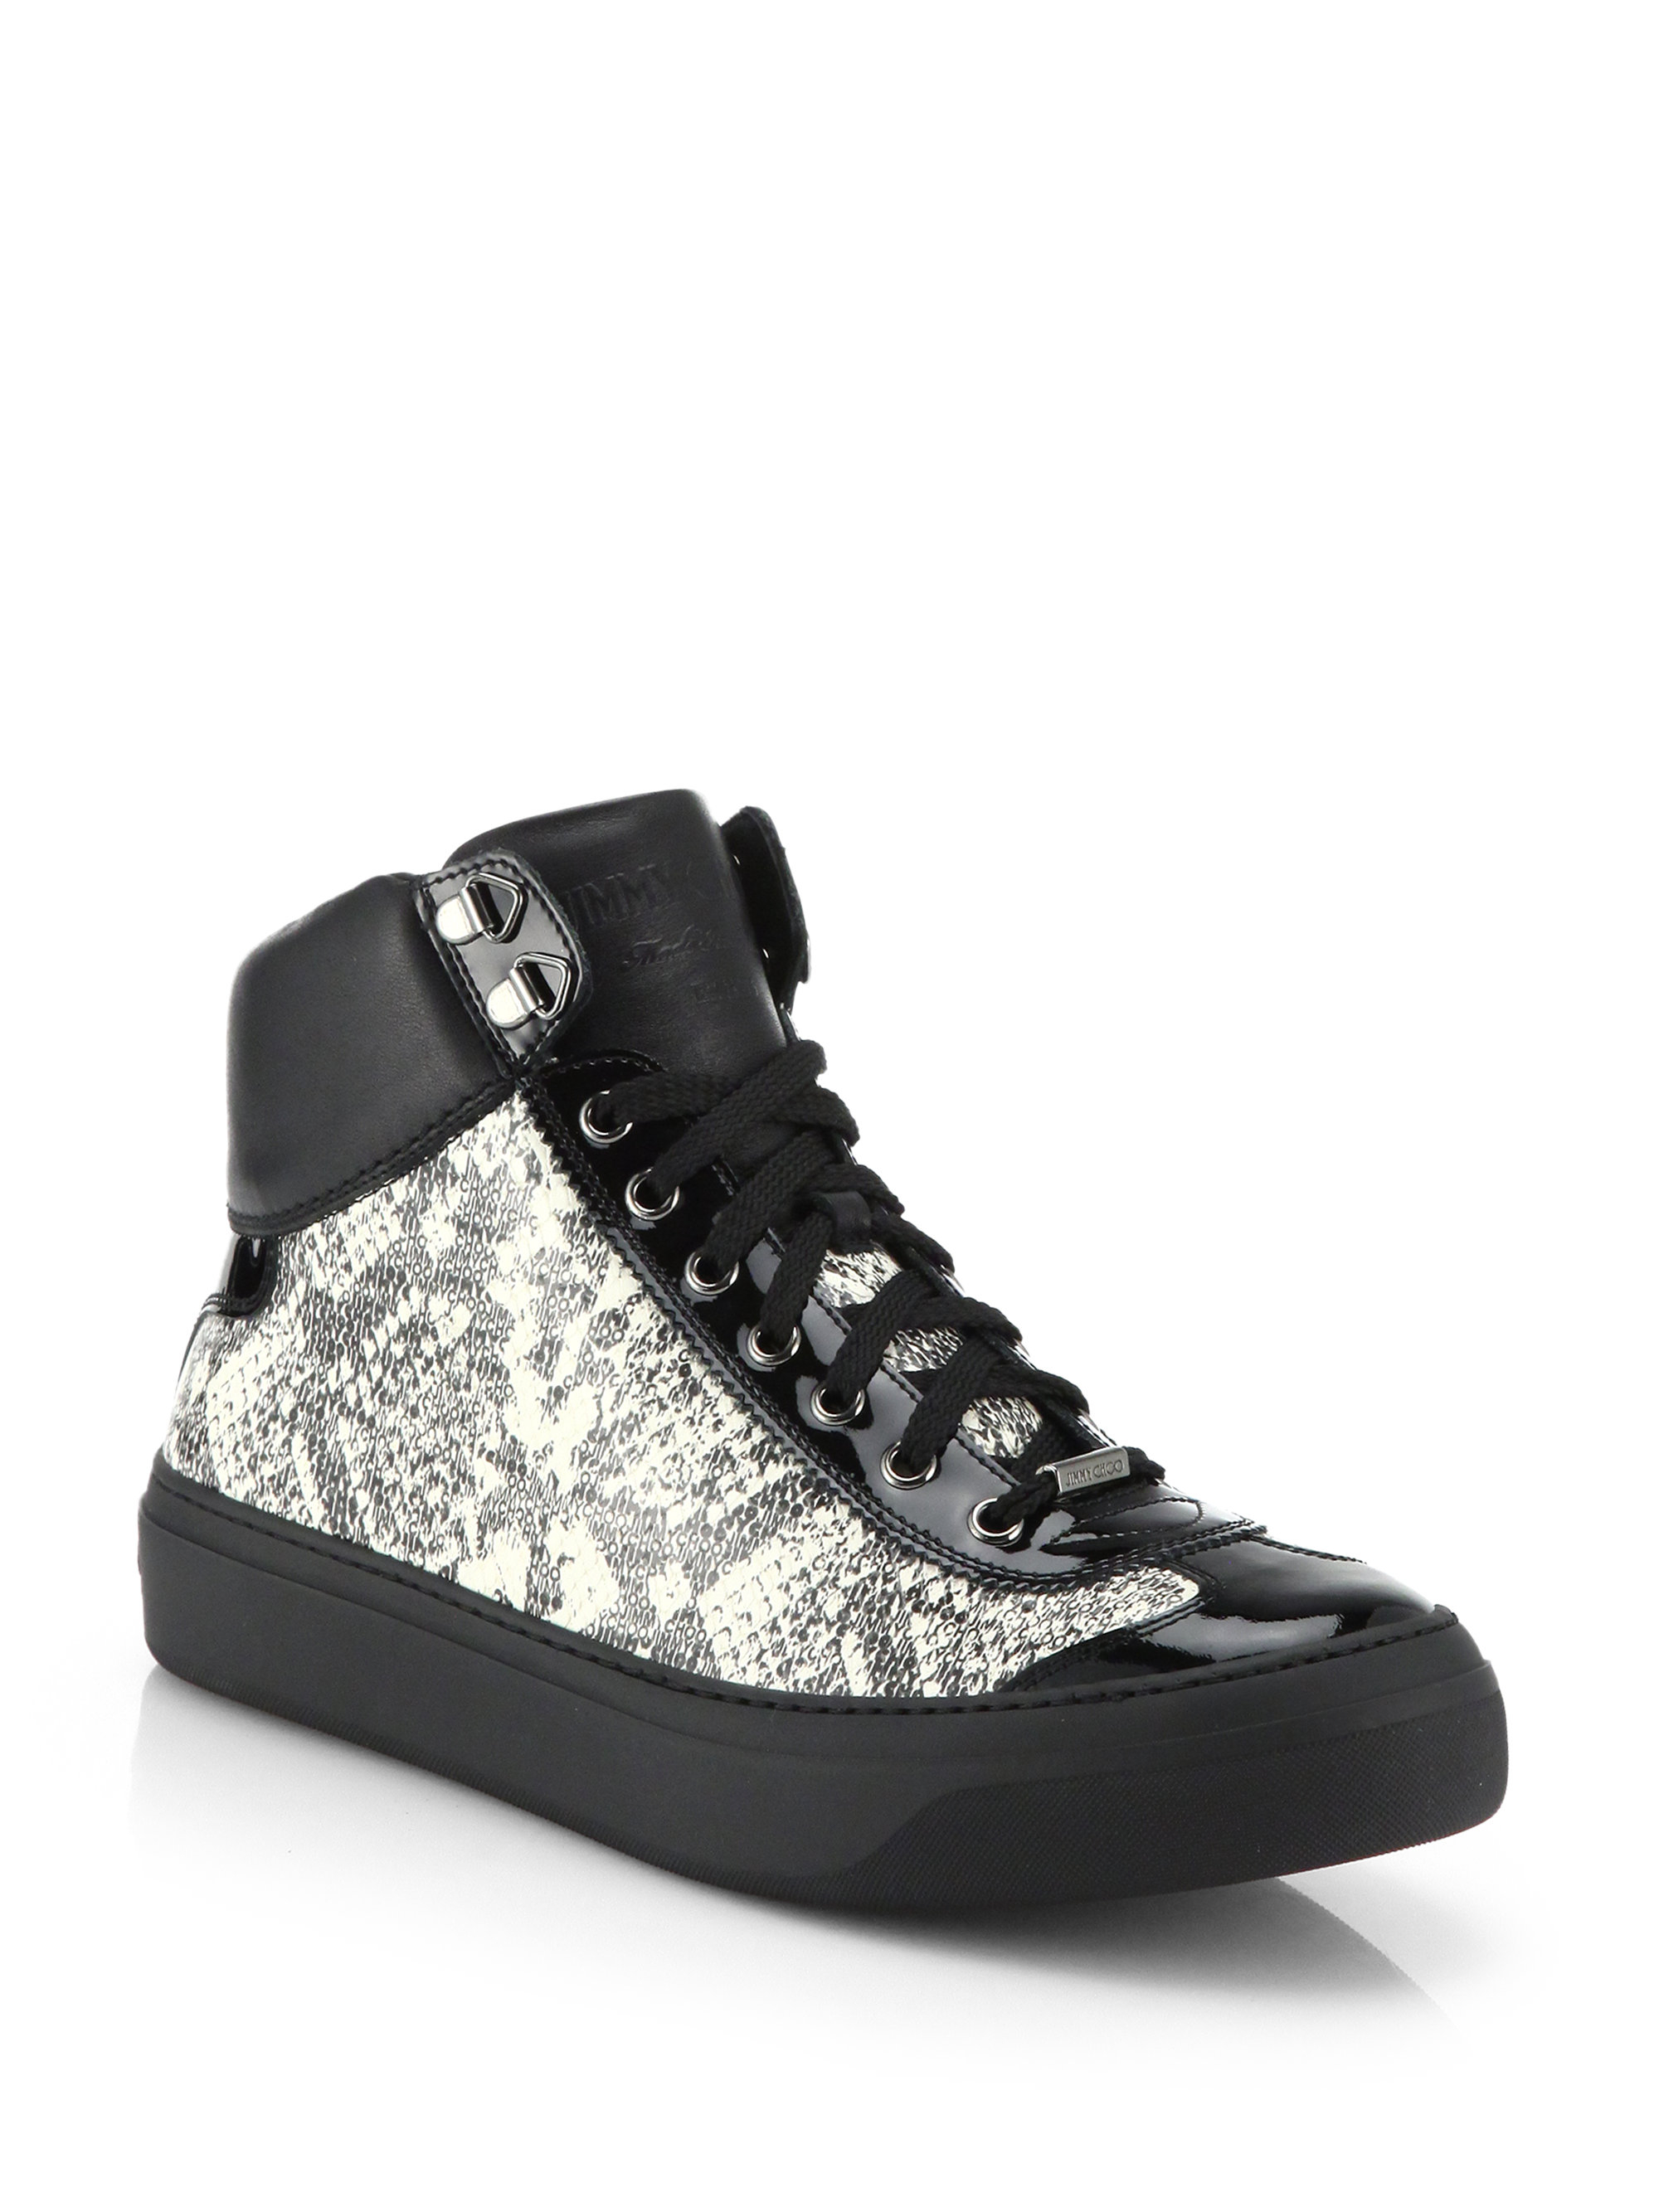 626fa58cc88f ... free shipping lyst jimmy choo argyle snake print high top sneakers for  men 60300 4ca15